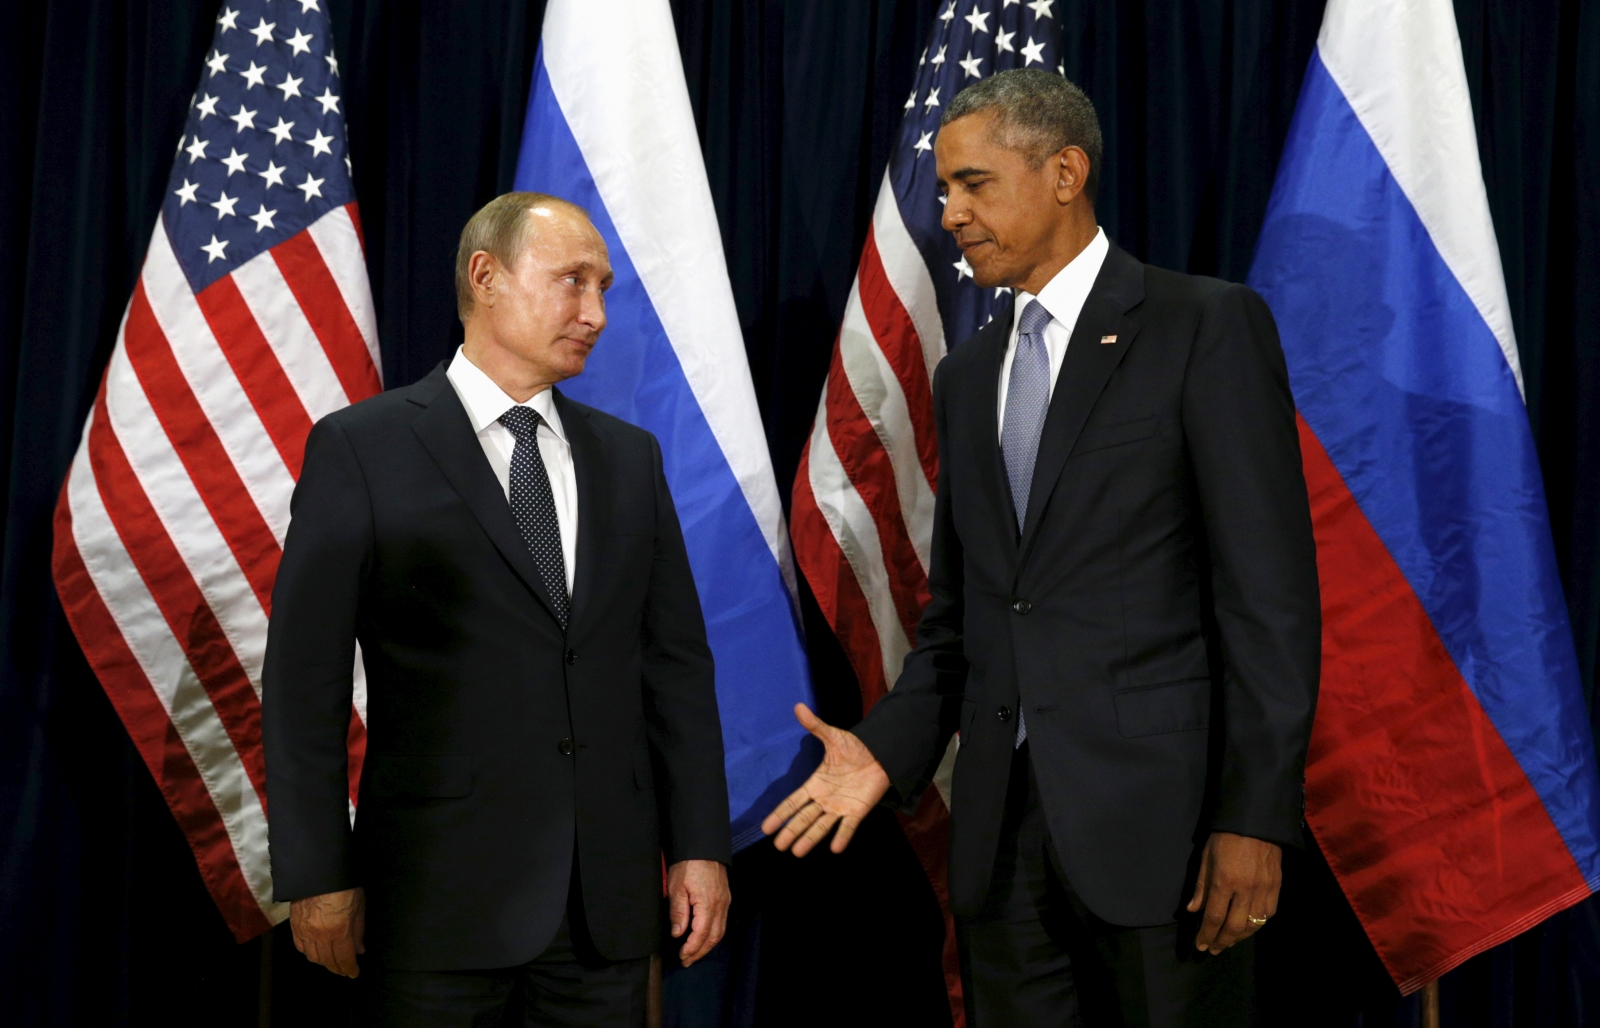 an introduction to the conflict between the us and russia The events of the last three weeks have catapulted ukraine to the forefront of the us policy agenda, sparking an intense crisis of confidence between the united states and russia—the worst since 1979.